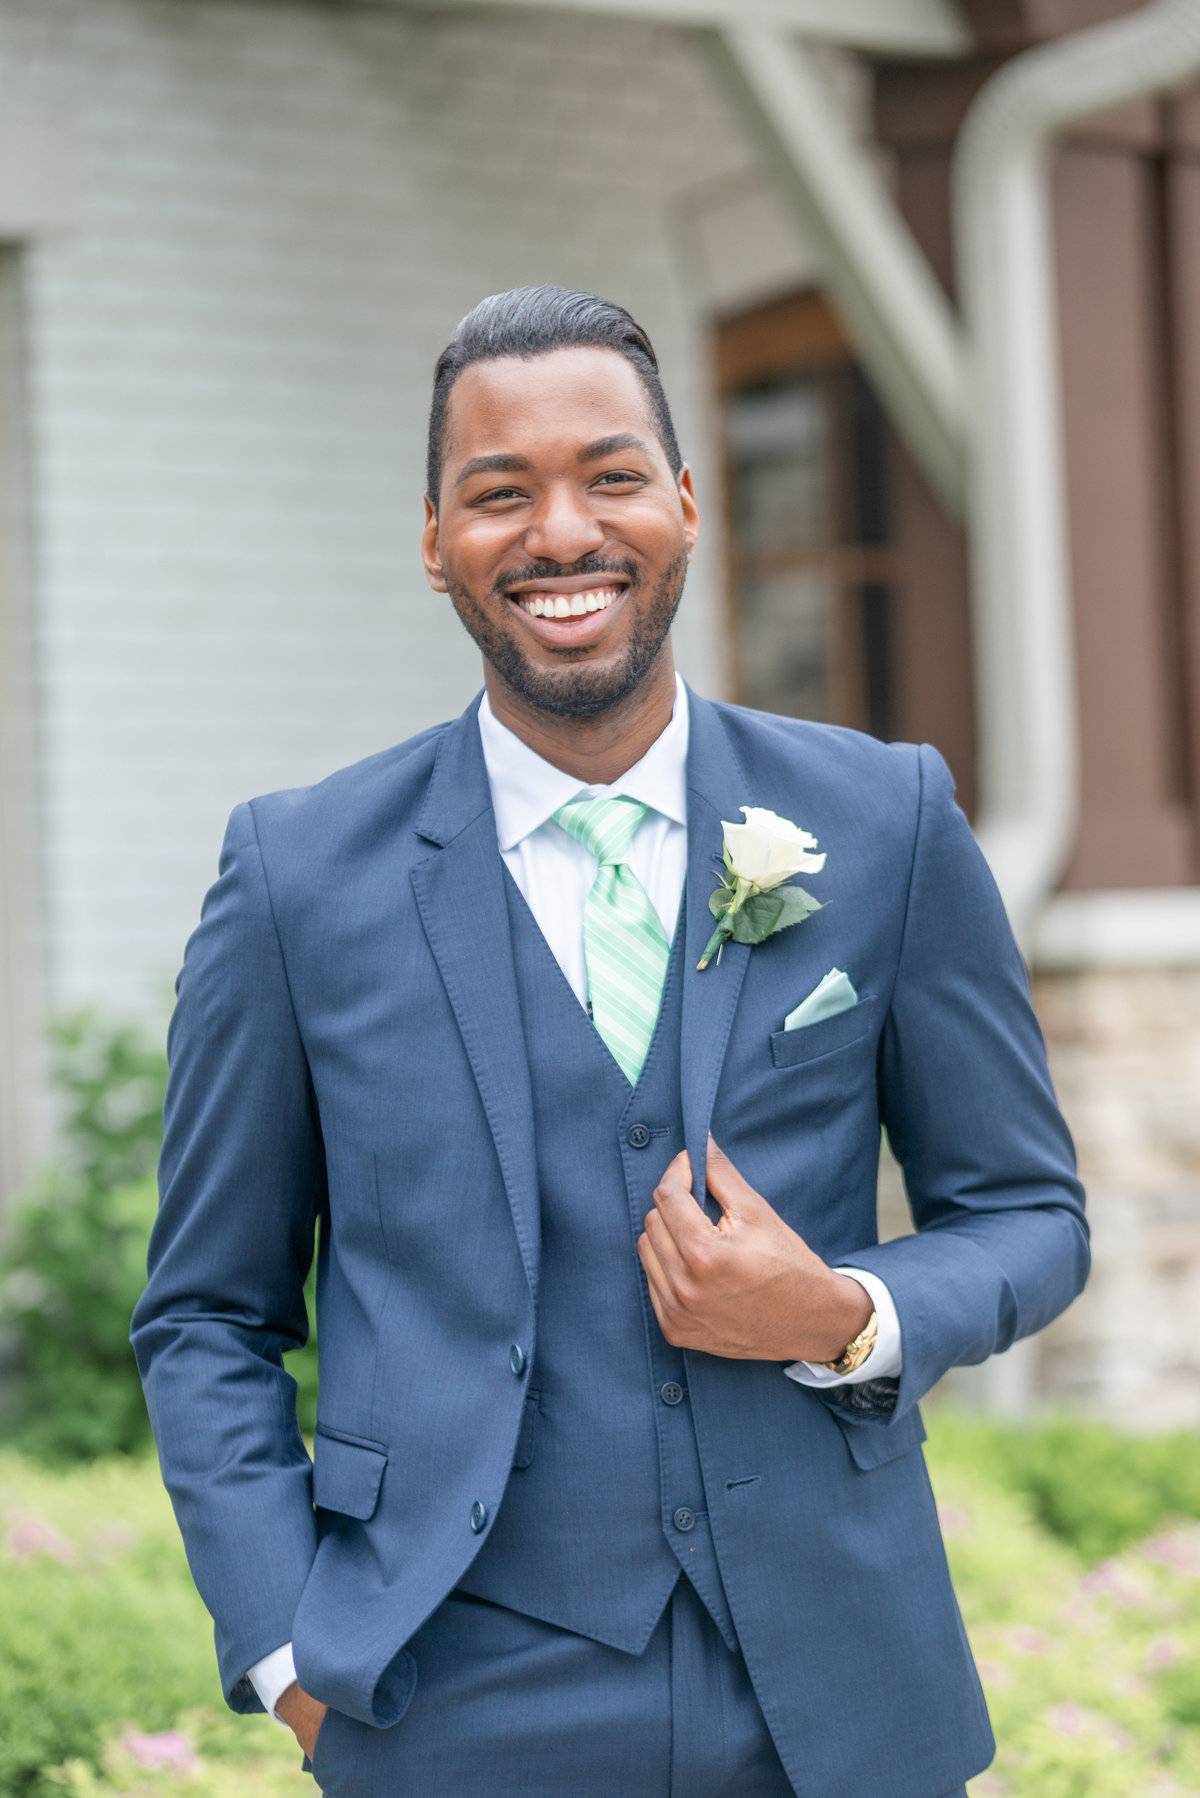 Stylish groom smiles while wearing a dark blue suit and green tie